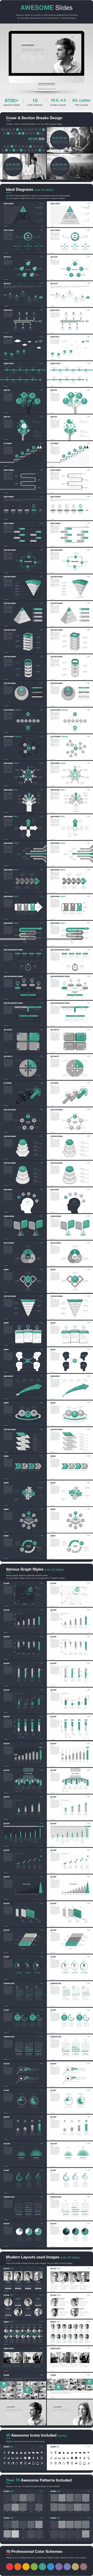 Awesome Slides PowerPoint Template / Theme / Presentation / Slides / Background / Power Point #powerpoint #template #theme